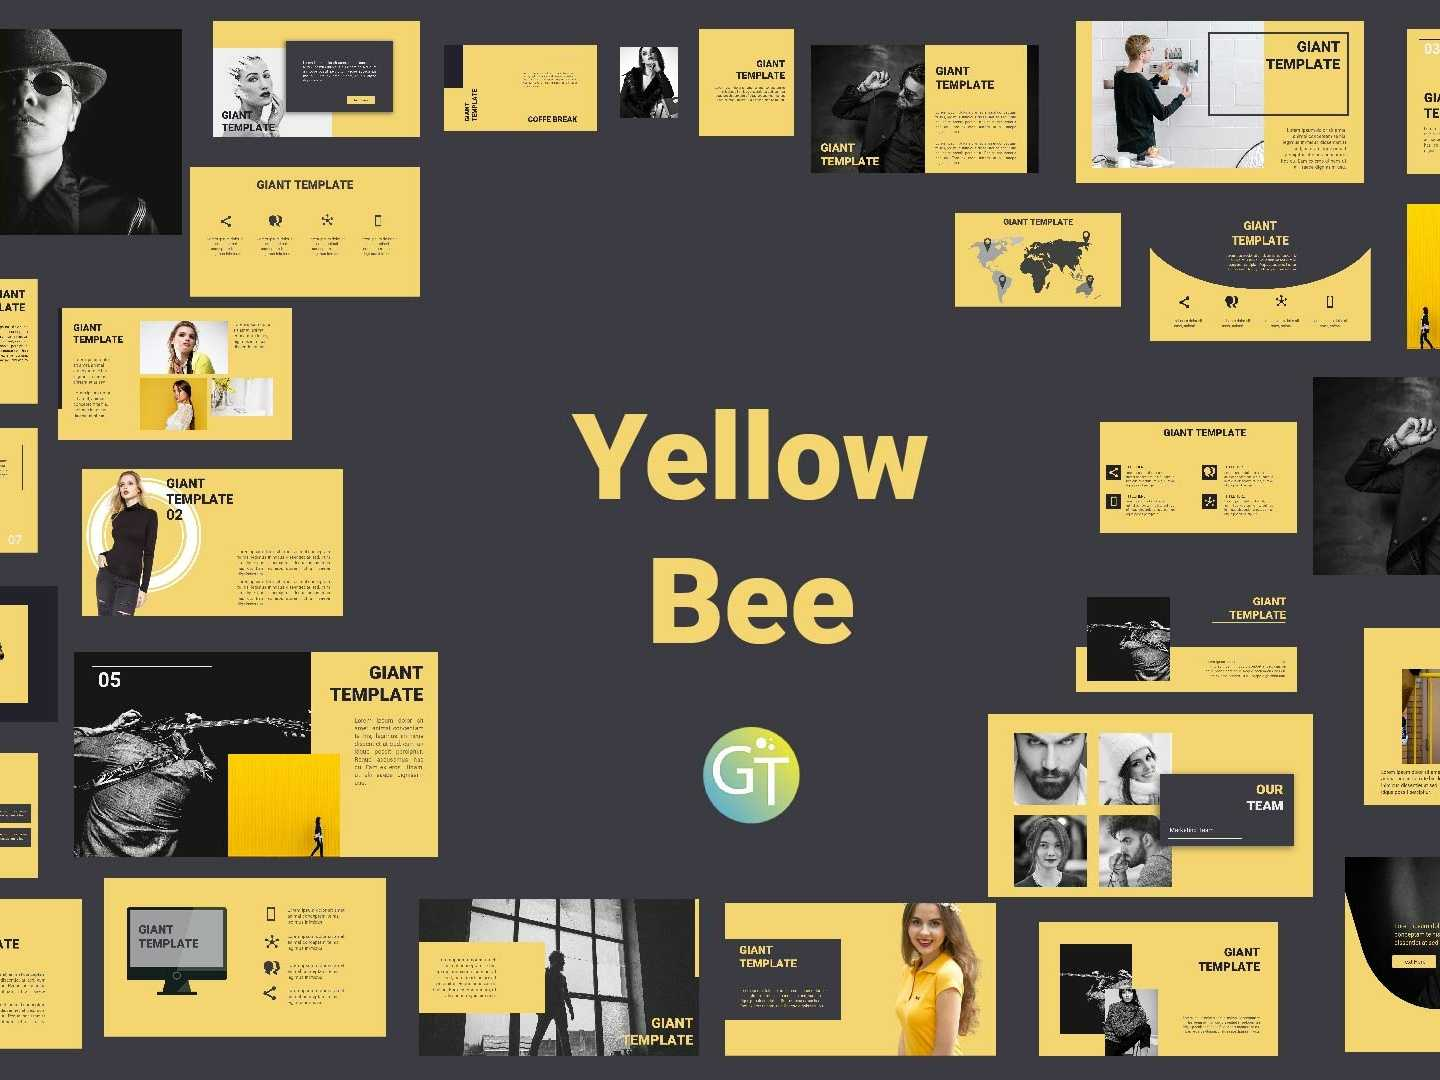 Yellowbee Free Powerpoint Template Free Downloadgiant Pertaining To Powerpoint Animation Templates Free Download